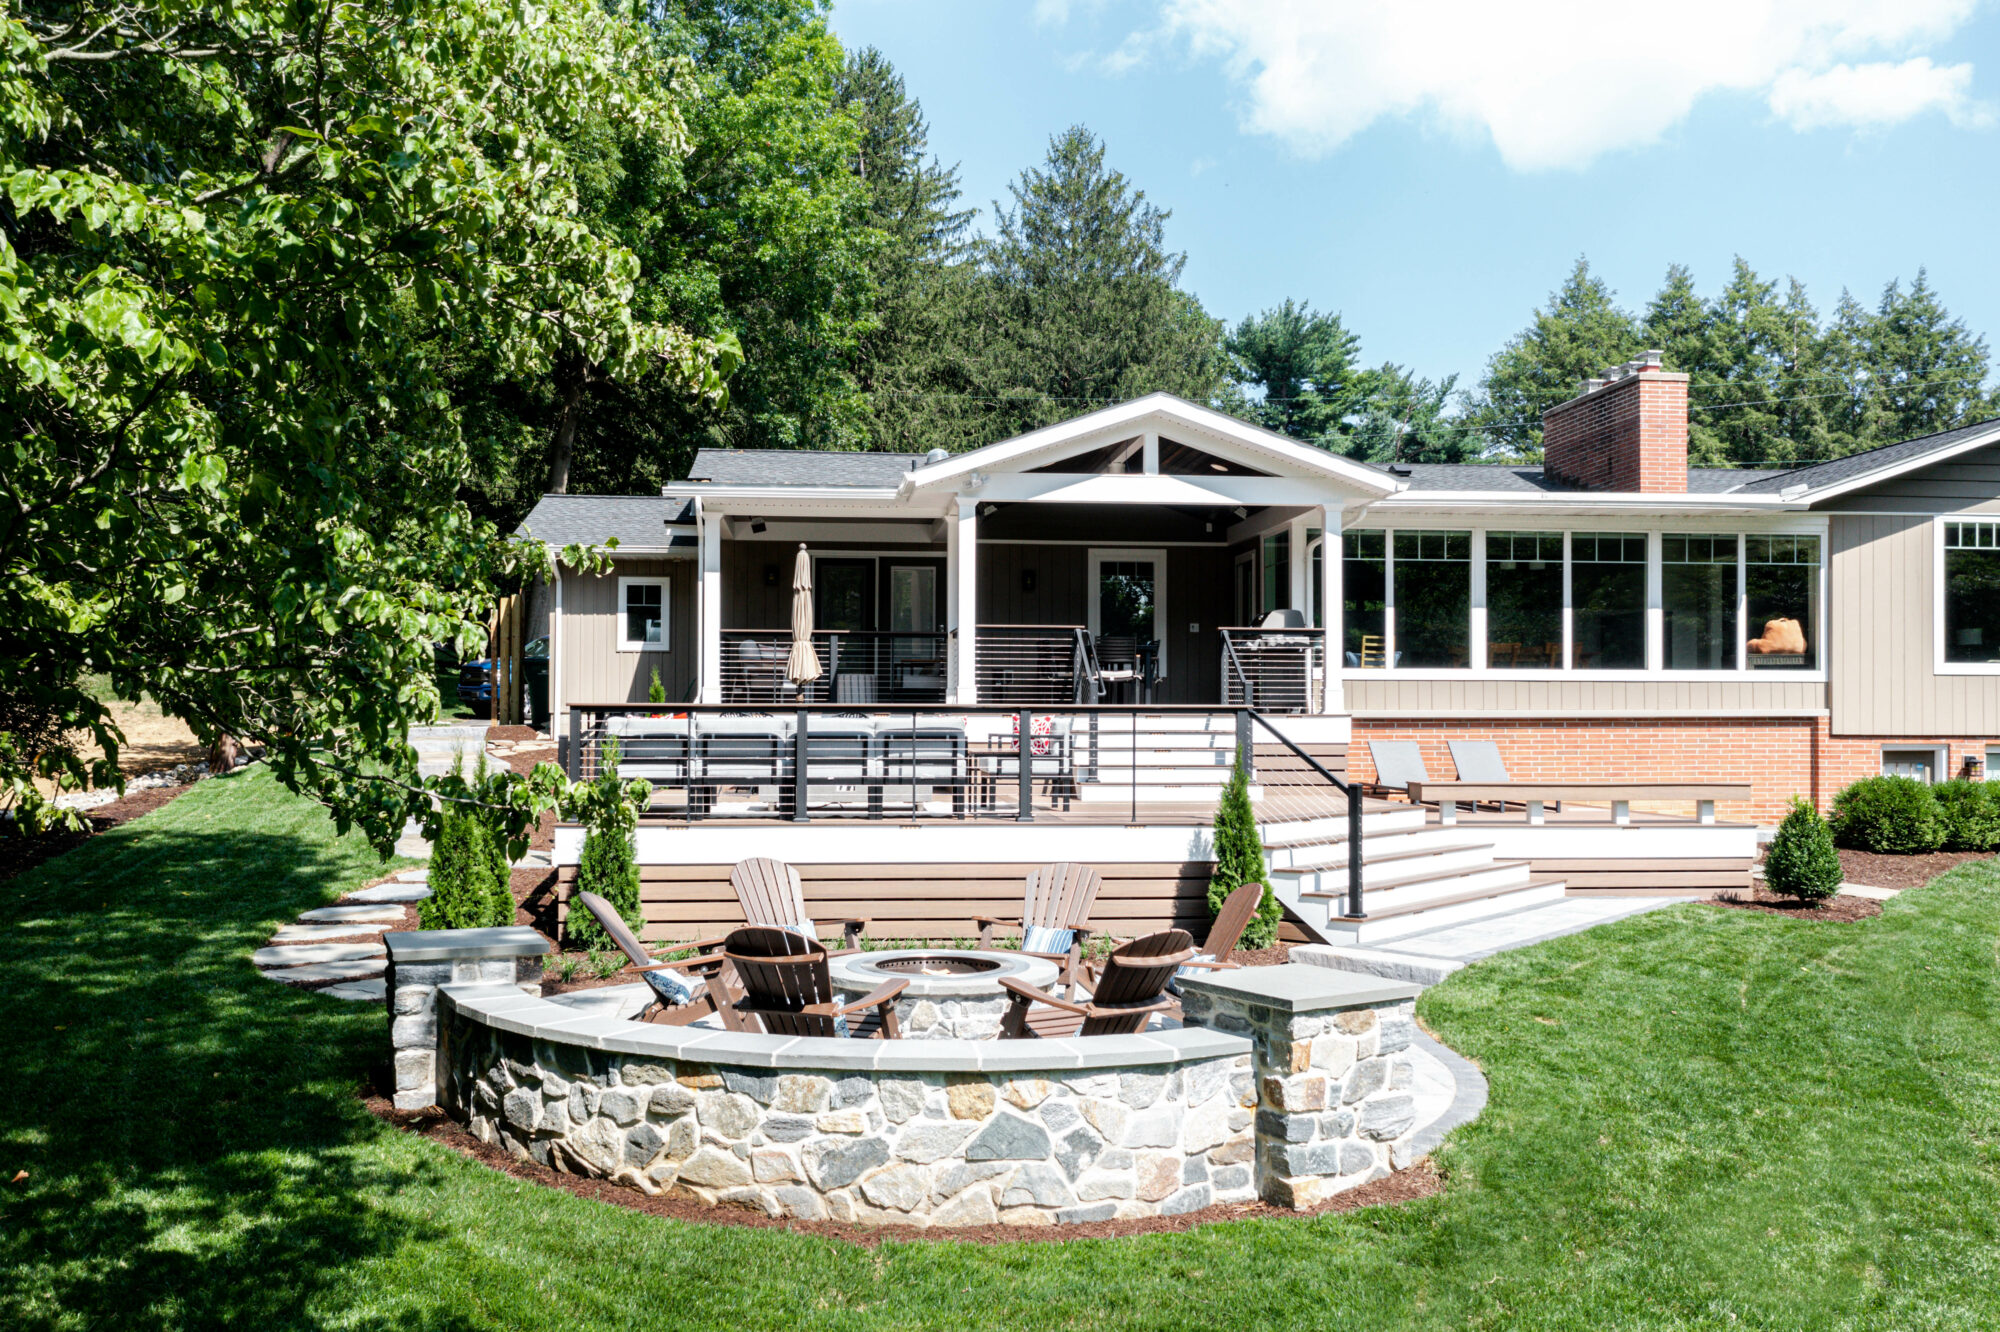 Multi-Level deck, Modern Deck, Pecan, Mocha, Drink Rail, Cable Railing, Modern Railing, TimberTech, Decking, outdoor living, Techo block, patio, fire pit, breeo, roofed deck, porch, cover porch, pine ceiling, outdoor heaters, outdoor dining,